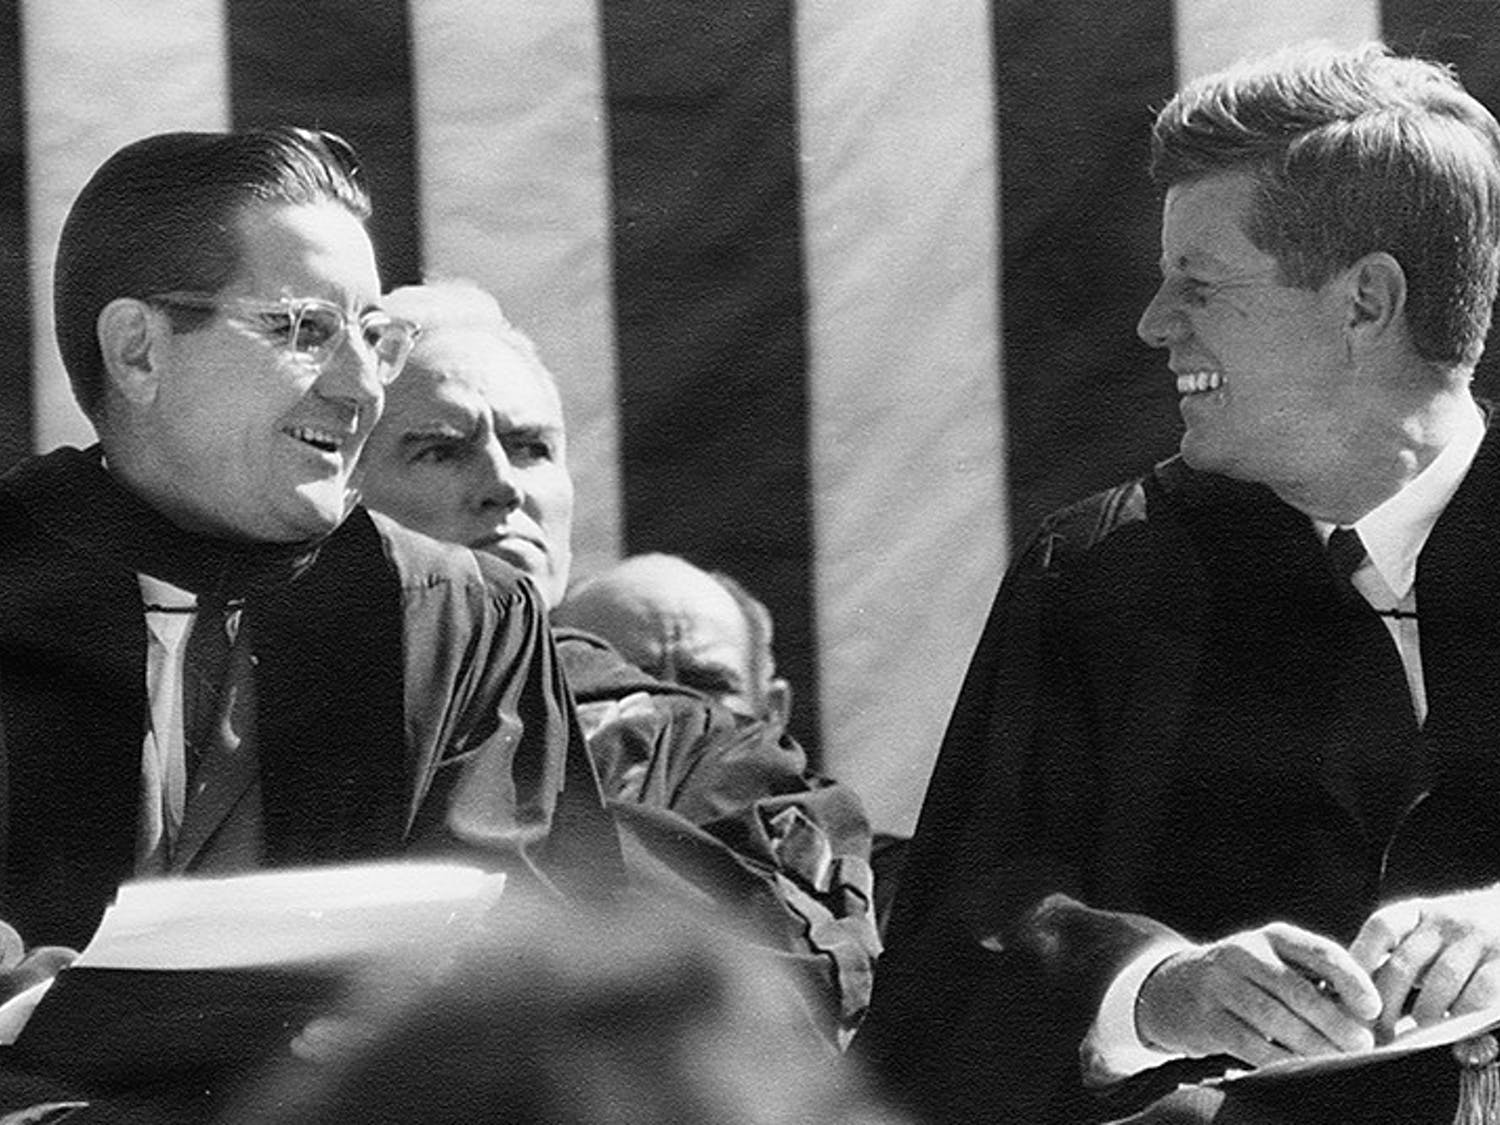 Bill Friday sits with President John F. Kennedy on stage at Kenan Stadium in 1961. President Kennedy came to UNC to speak on University Day. Courtesy of North Carolina Collection, UNC-CH